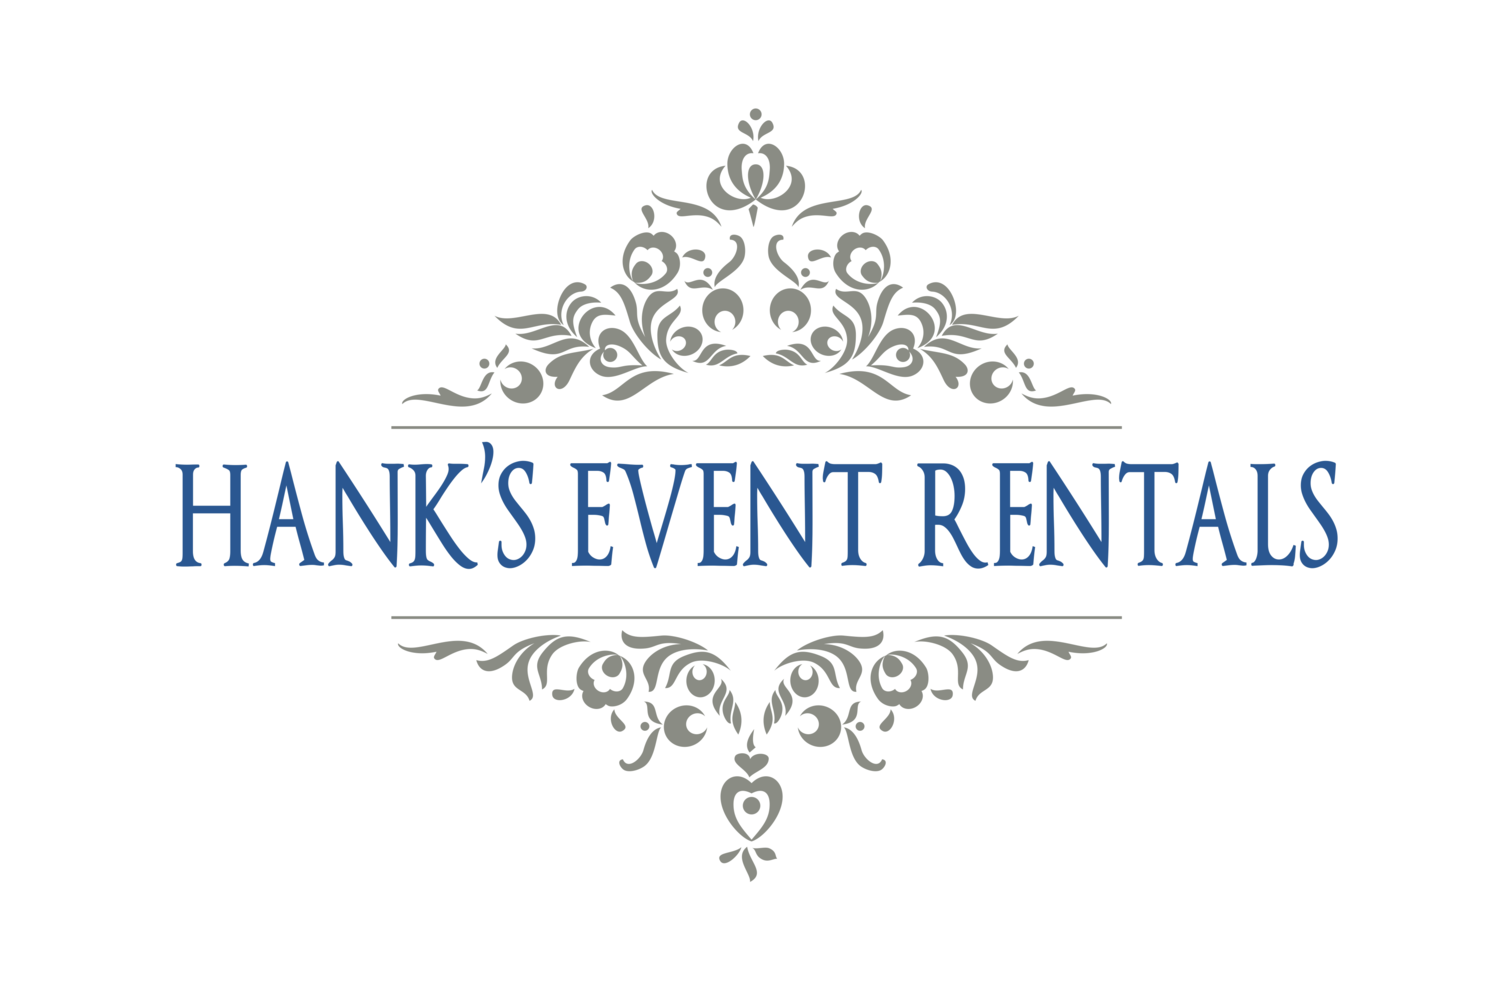 Hanks Event Rentals